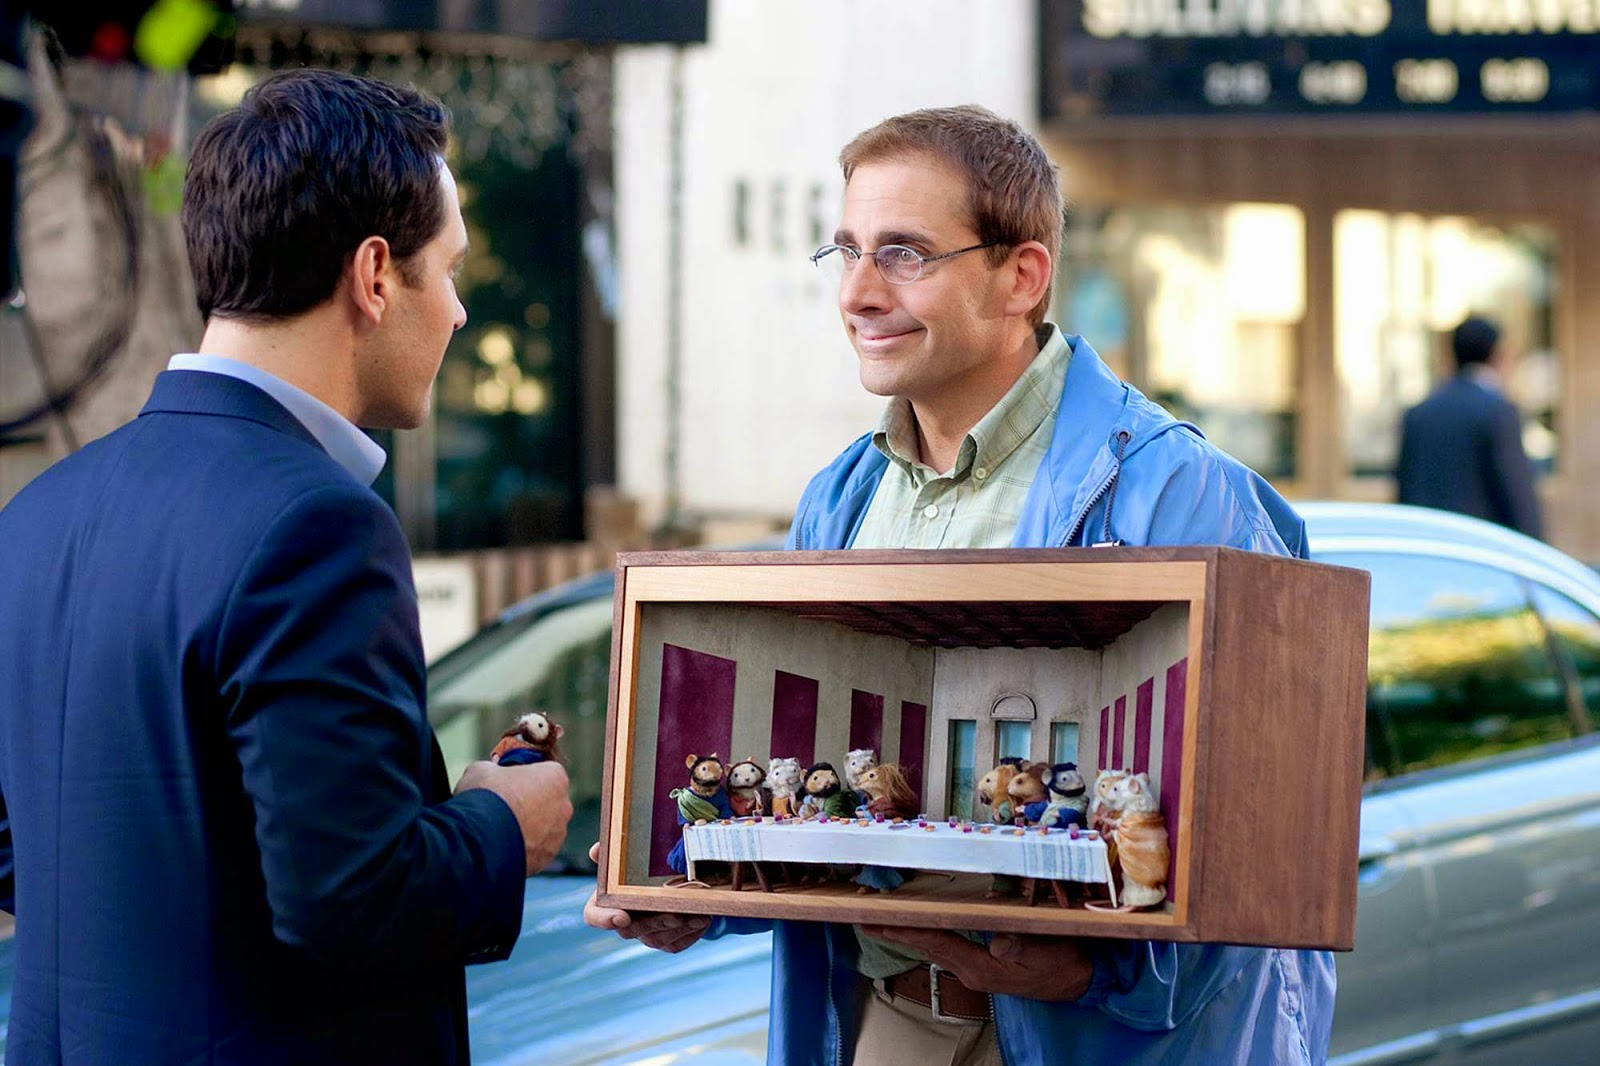 Dinner for Schmucks: Steve Carrel  & Paul Rudd| A Constantly Racing Mind